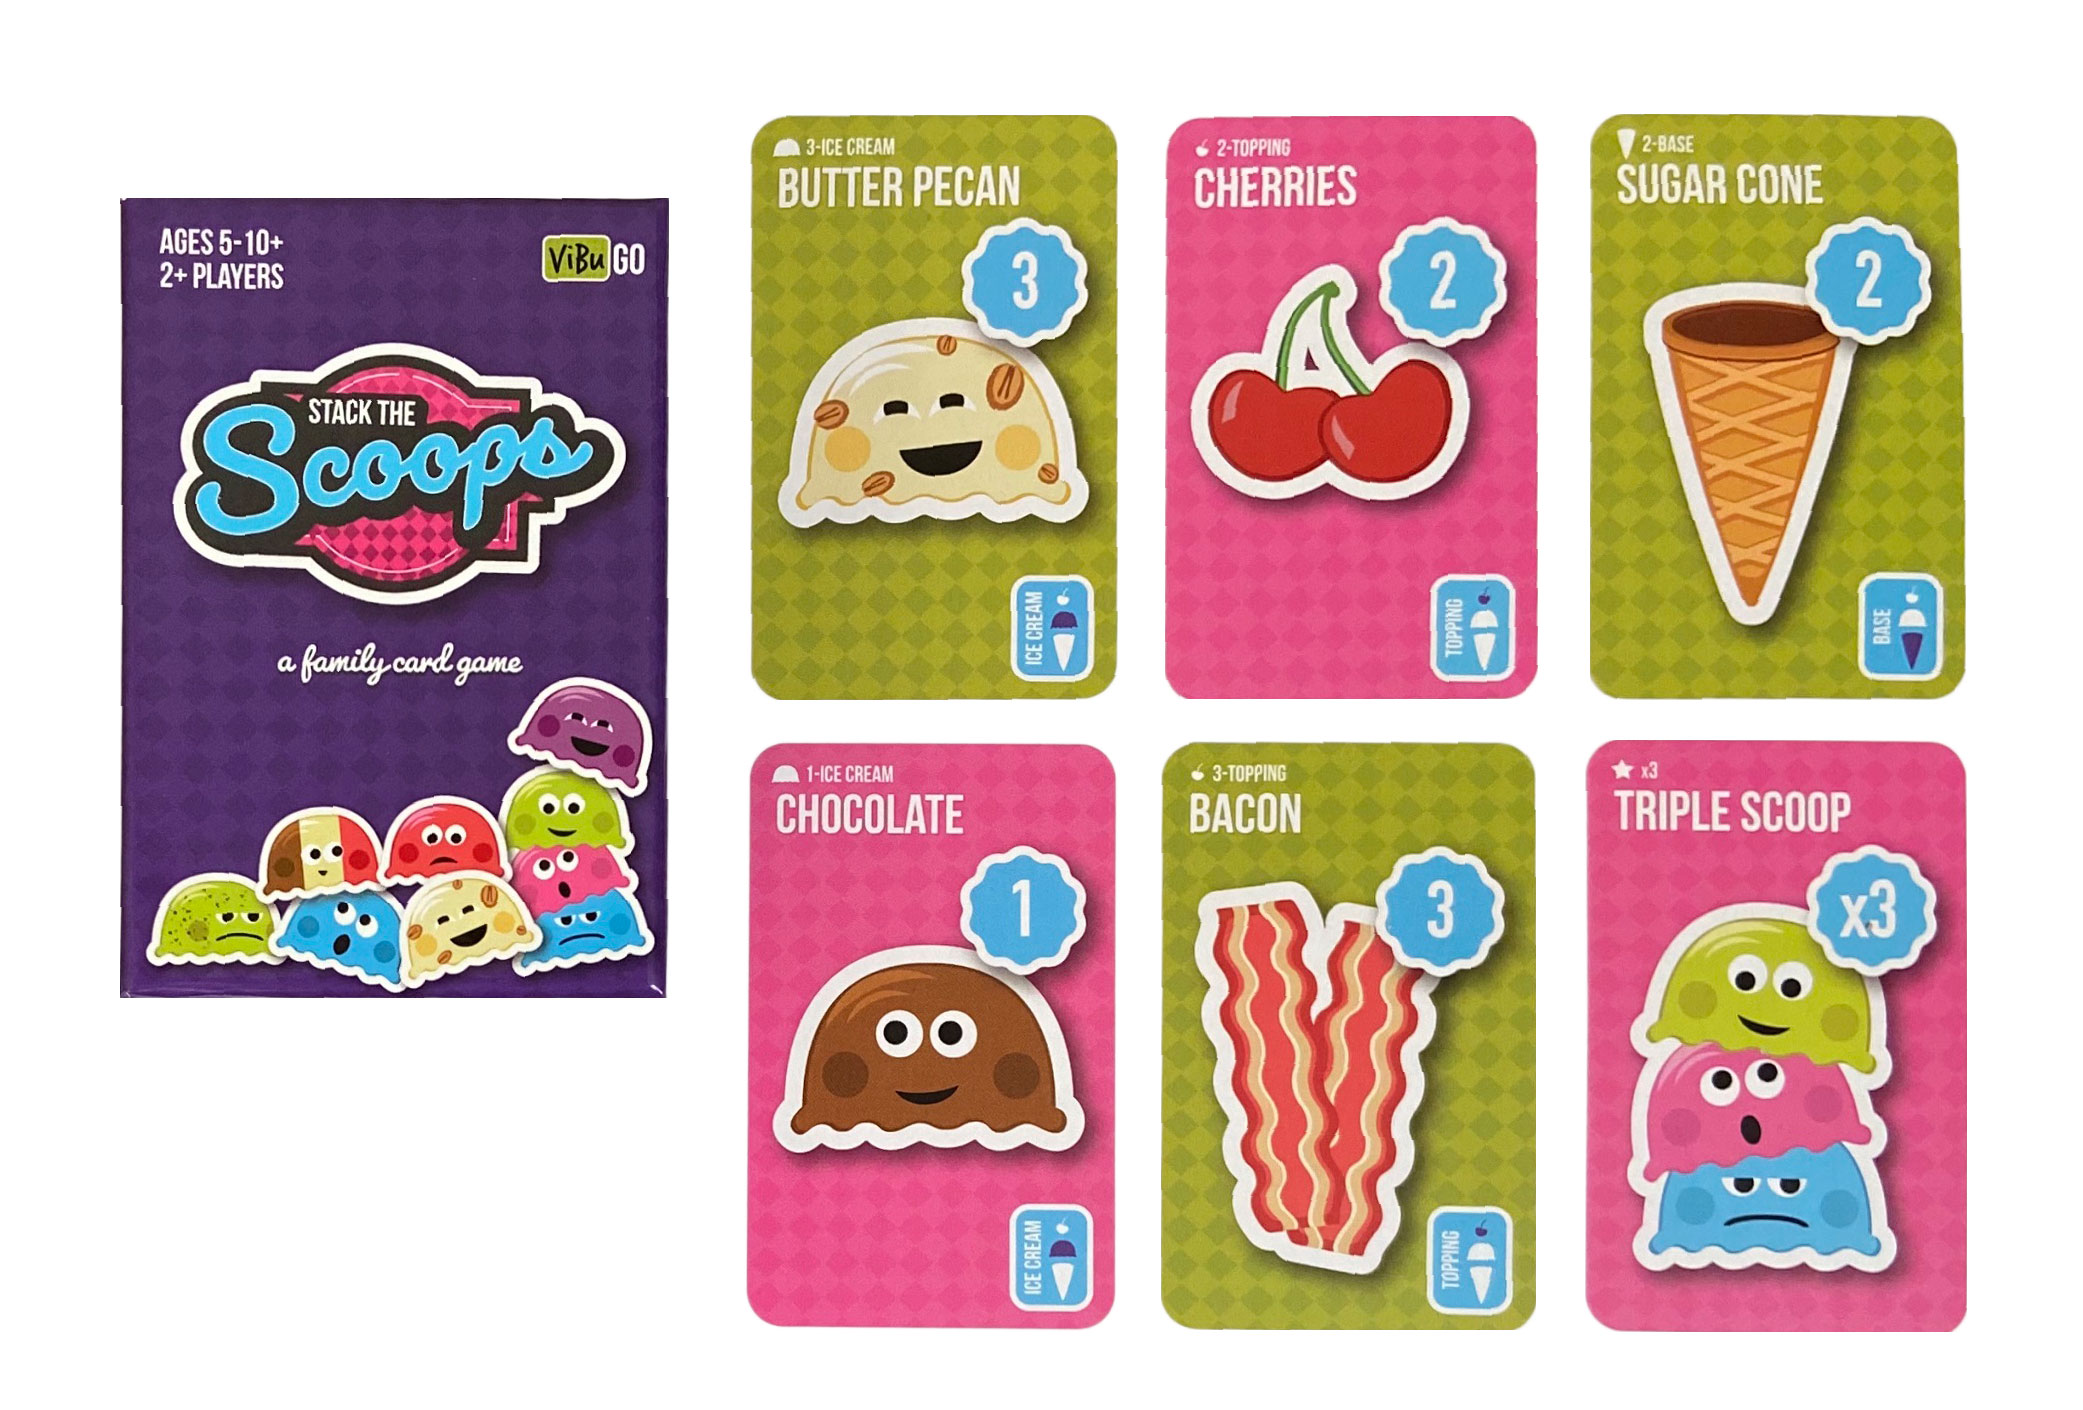 Stack The Scoops Cards and Box